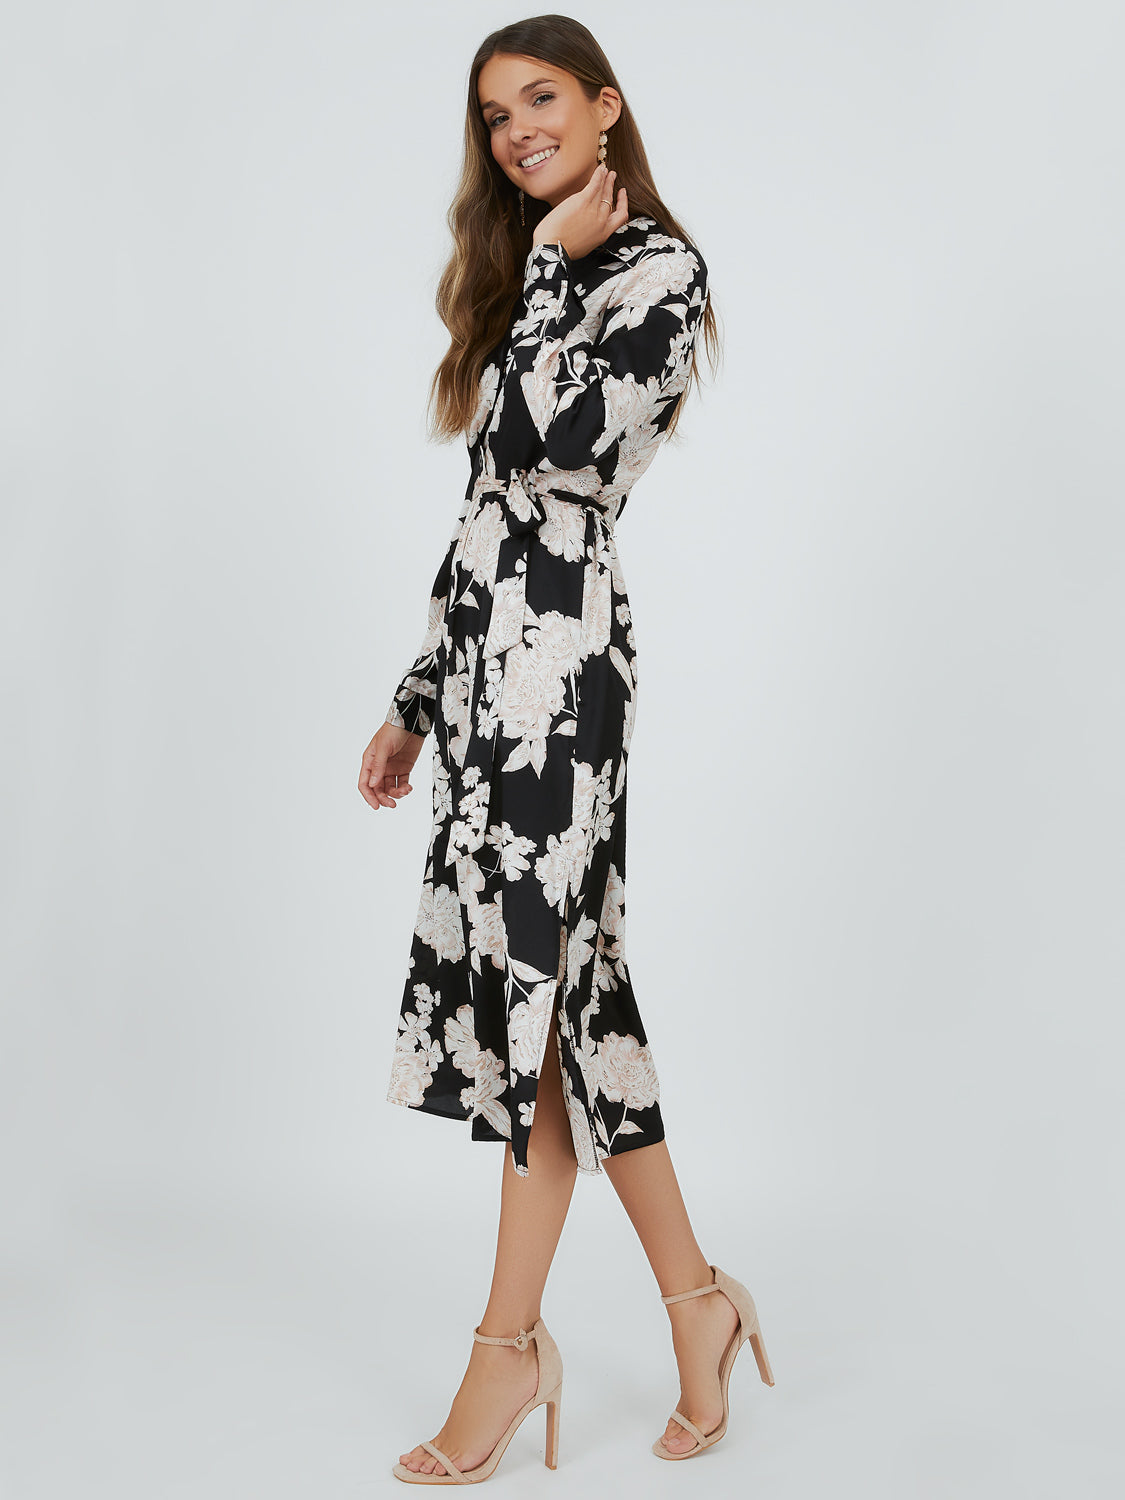 Sash-Tie Floral Midi Dress